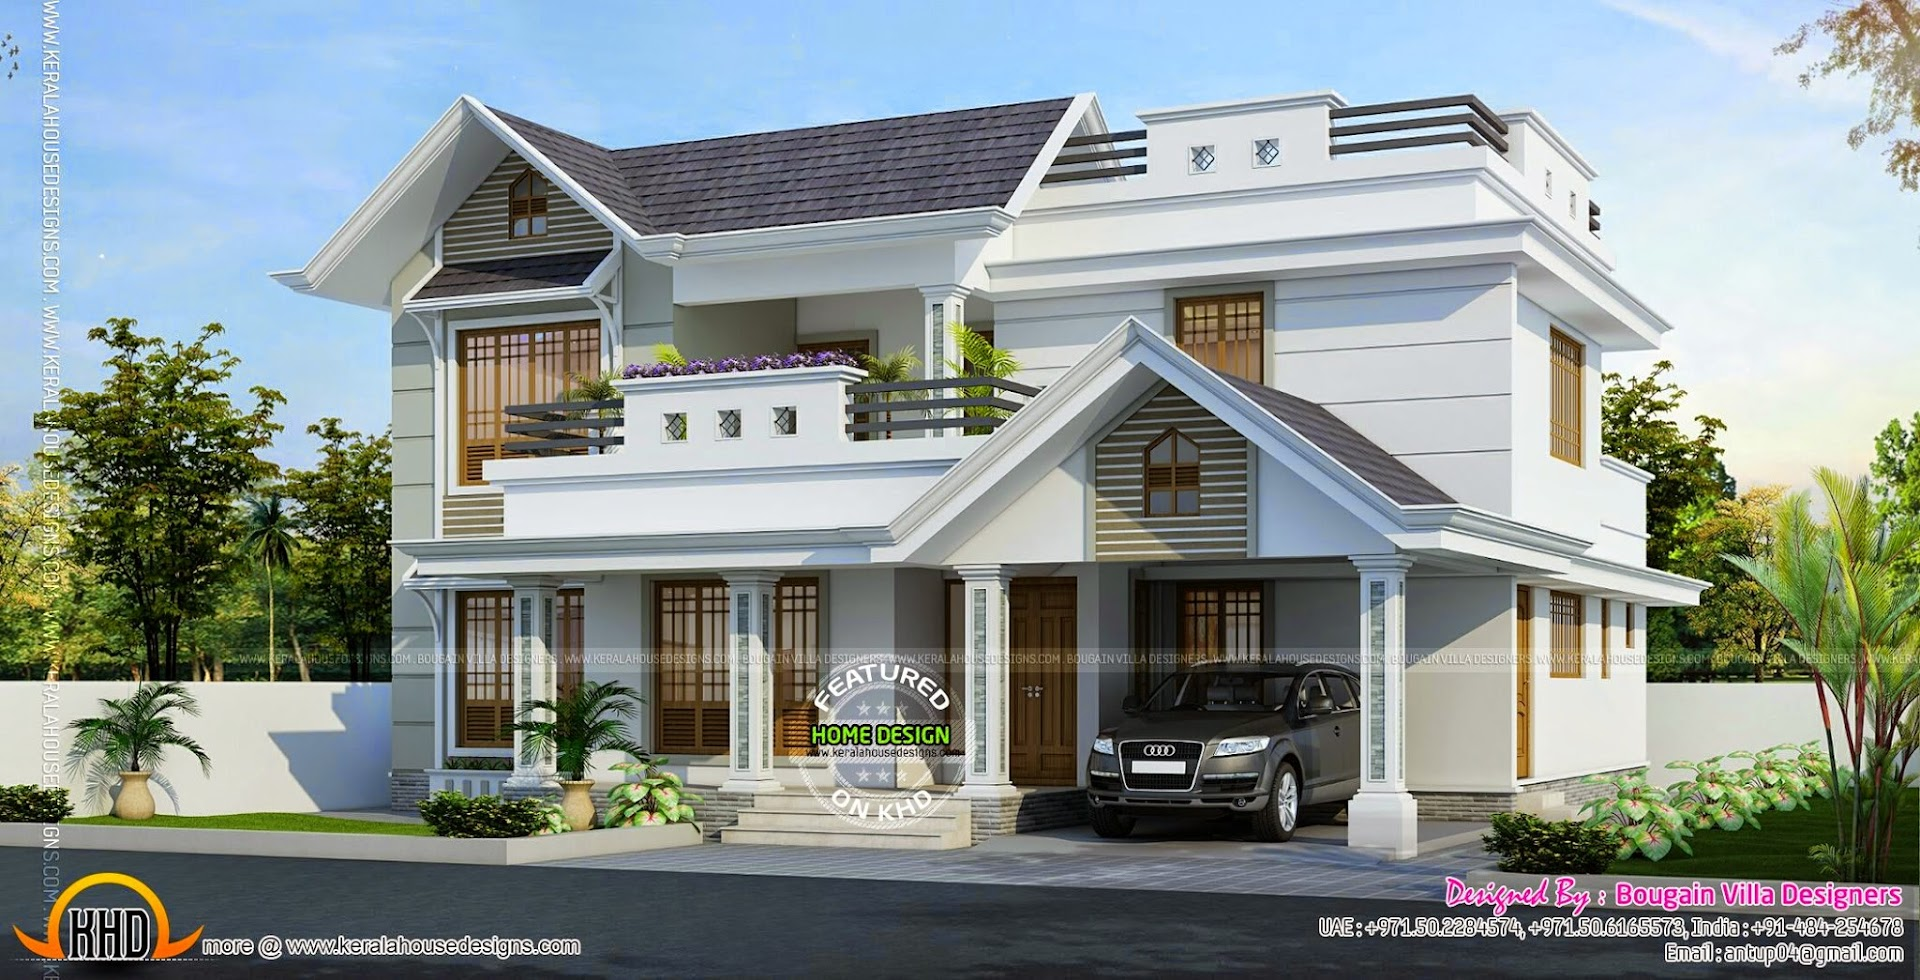 Beautiful house design in kollam keralahousedesigns for Classic house exterior design